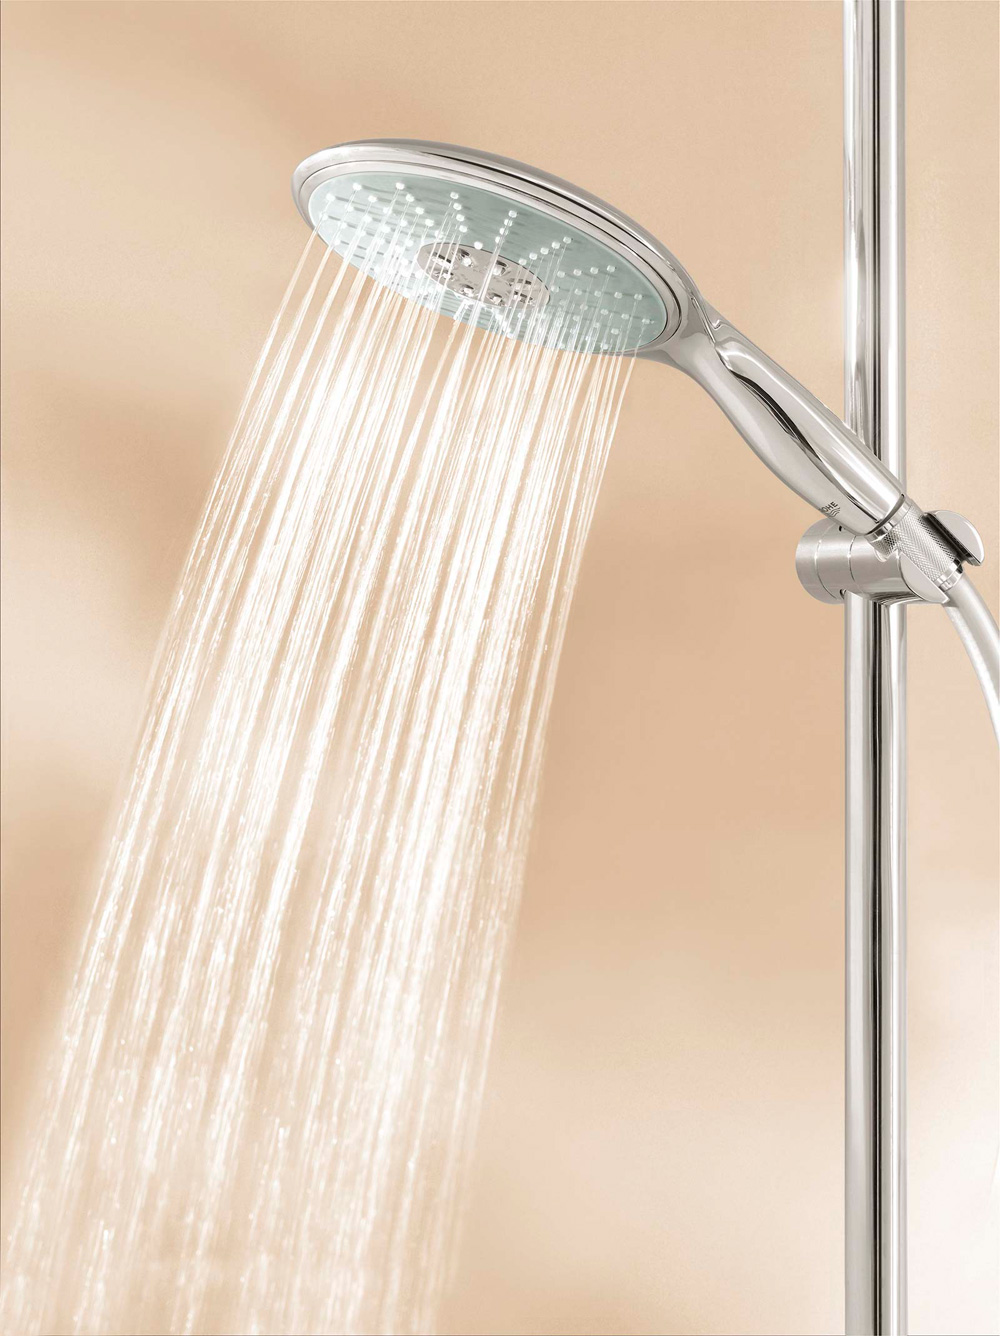 Colonne douche Grohe power and soul 4